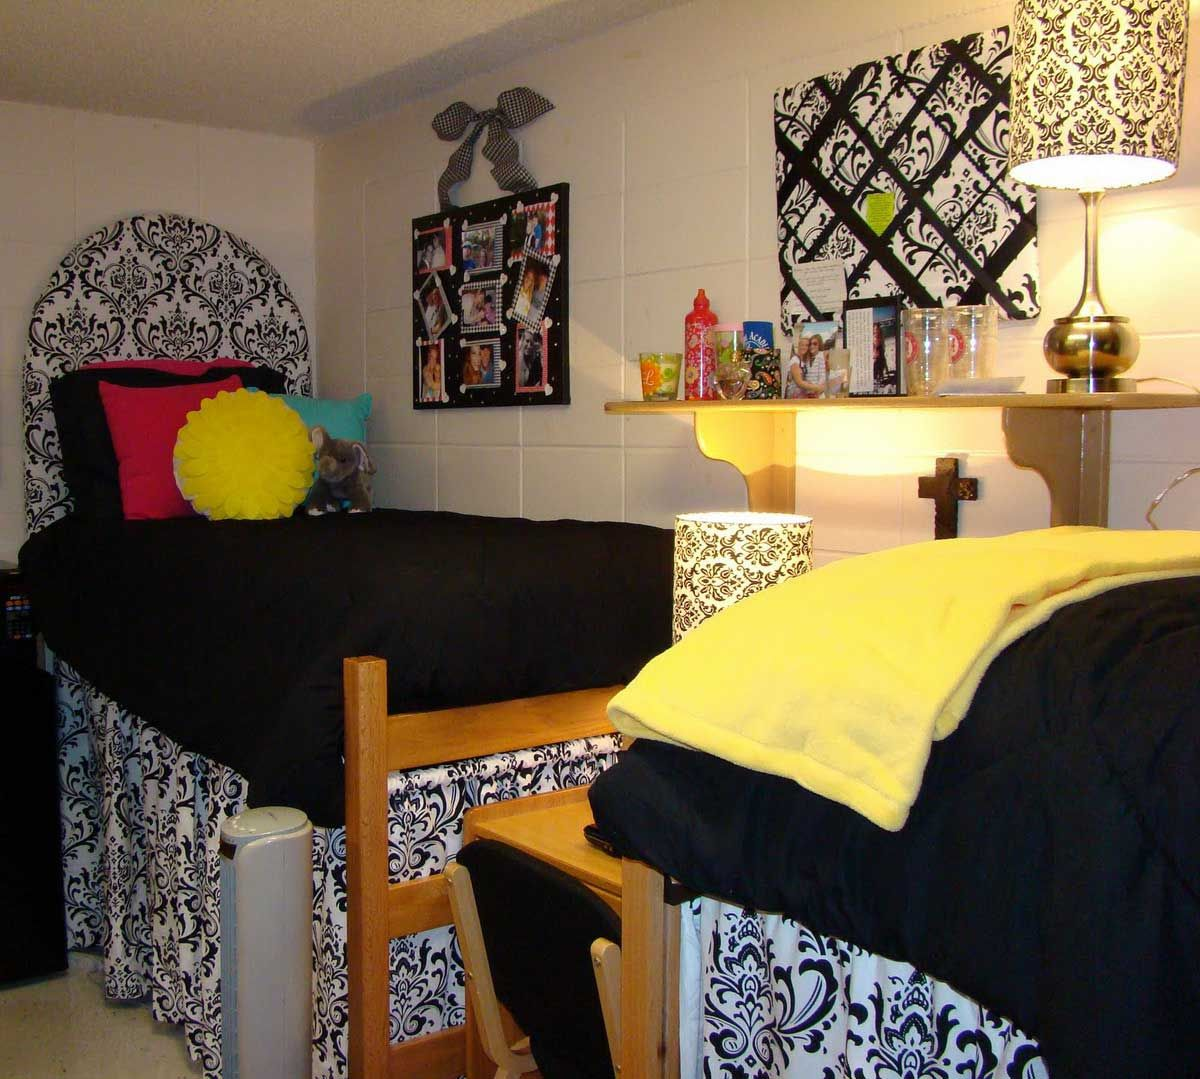 Dorm Room Design Ideas dream dorm decor best bedding ever 17 Best Images About Todays Dorm Rooms On Pinterest High Resolution Images Boy Dorm Rooms And Home Computer